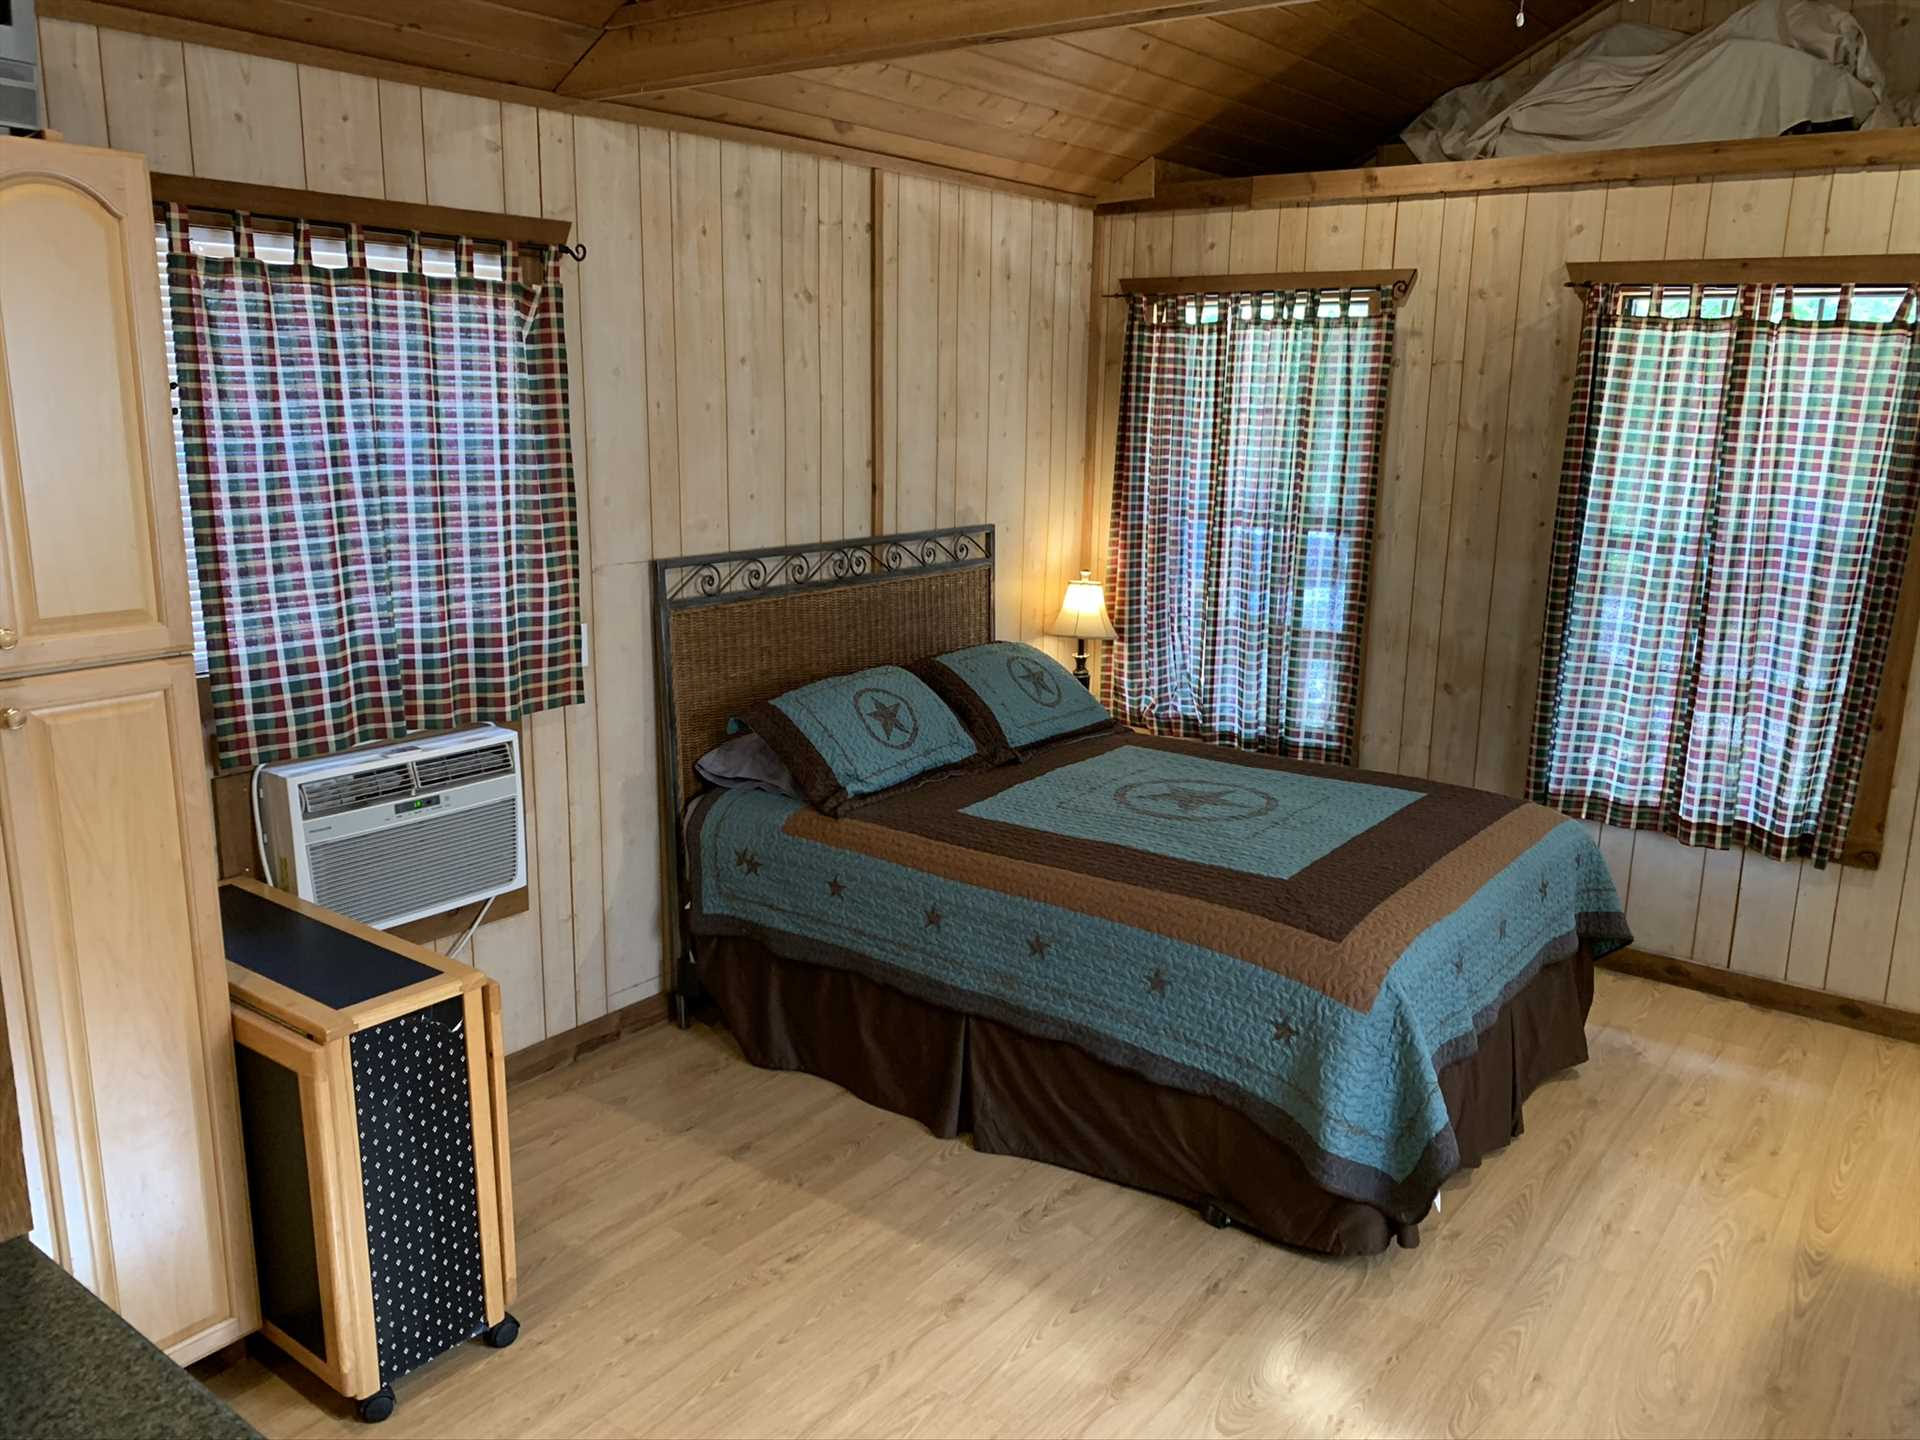 With luxurious sleeping space for up to four, the cabin serves equally well as a family getaway, or as a couples' retreat.